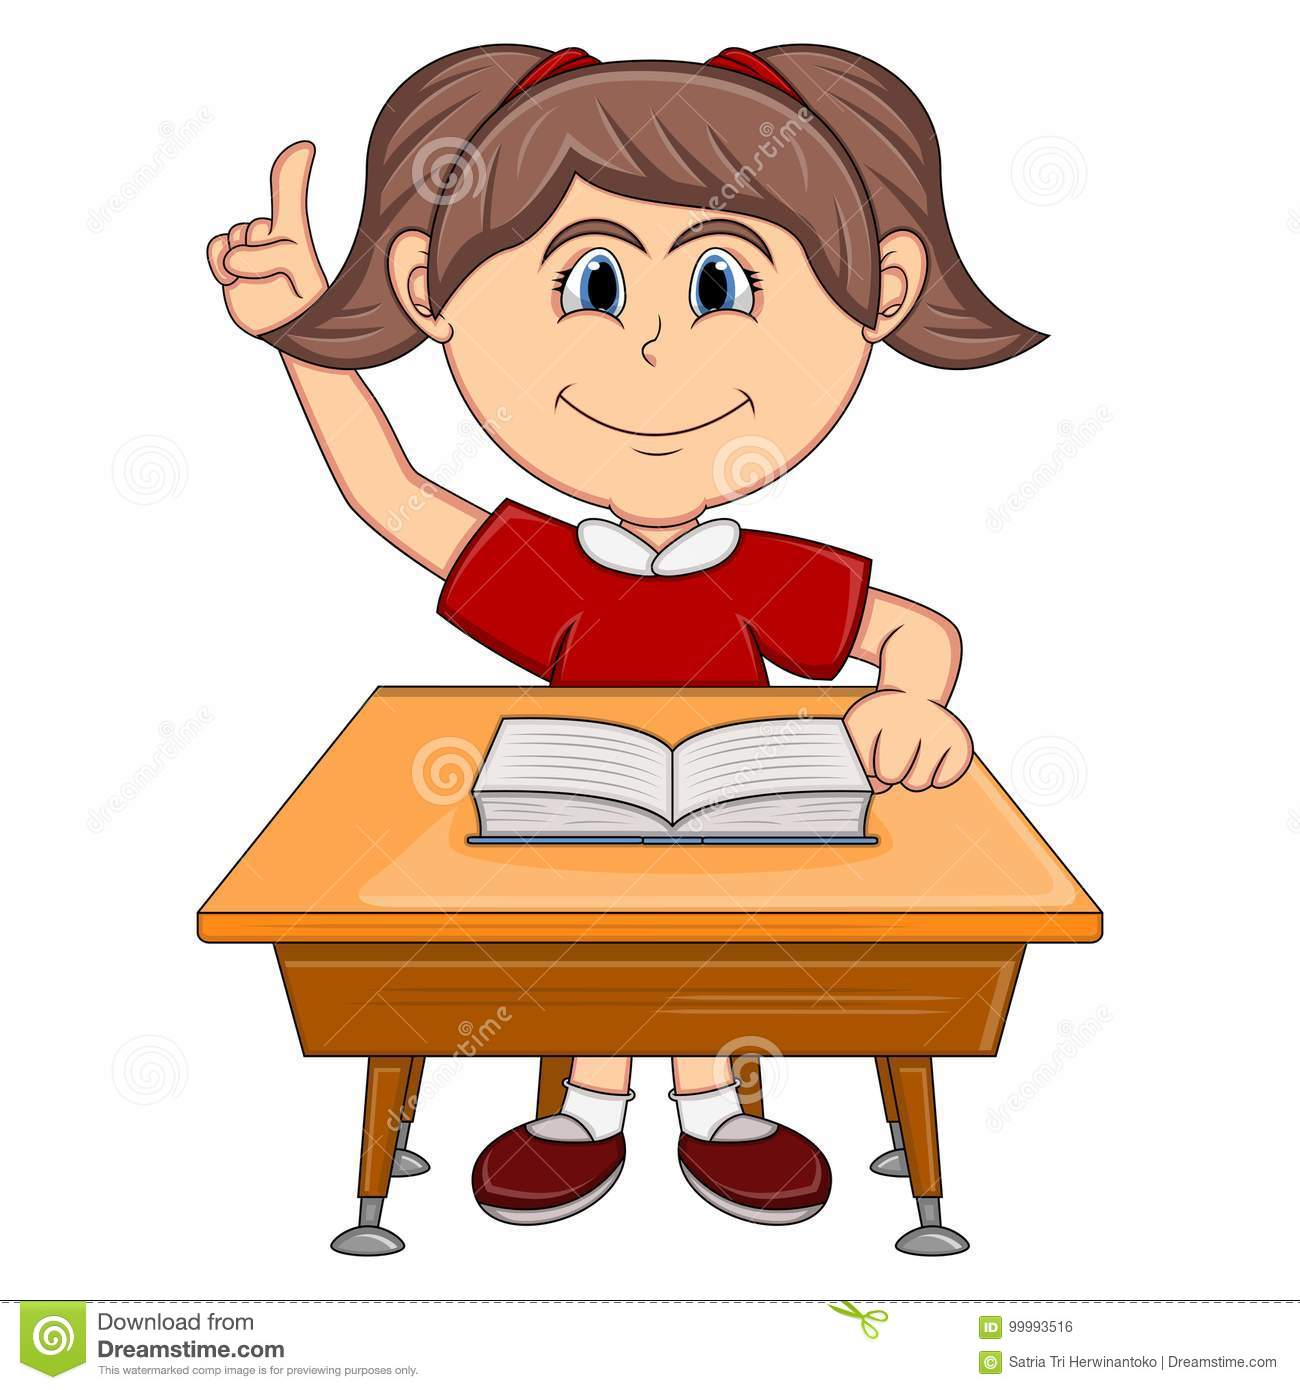 Girl Studying With School Table Cartoon Stock Vector Illustration Of Girl Education 99993516